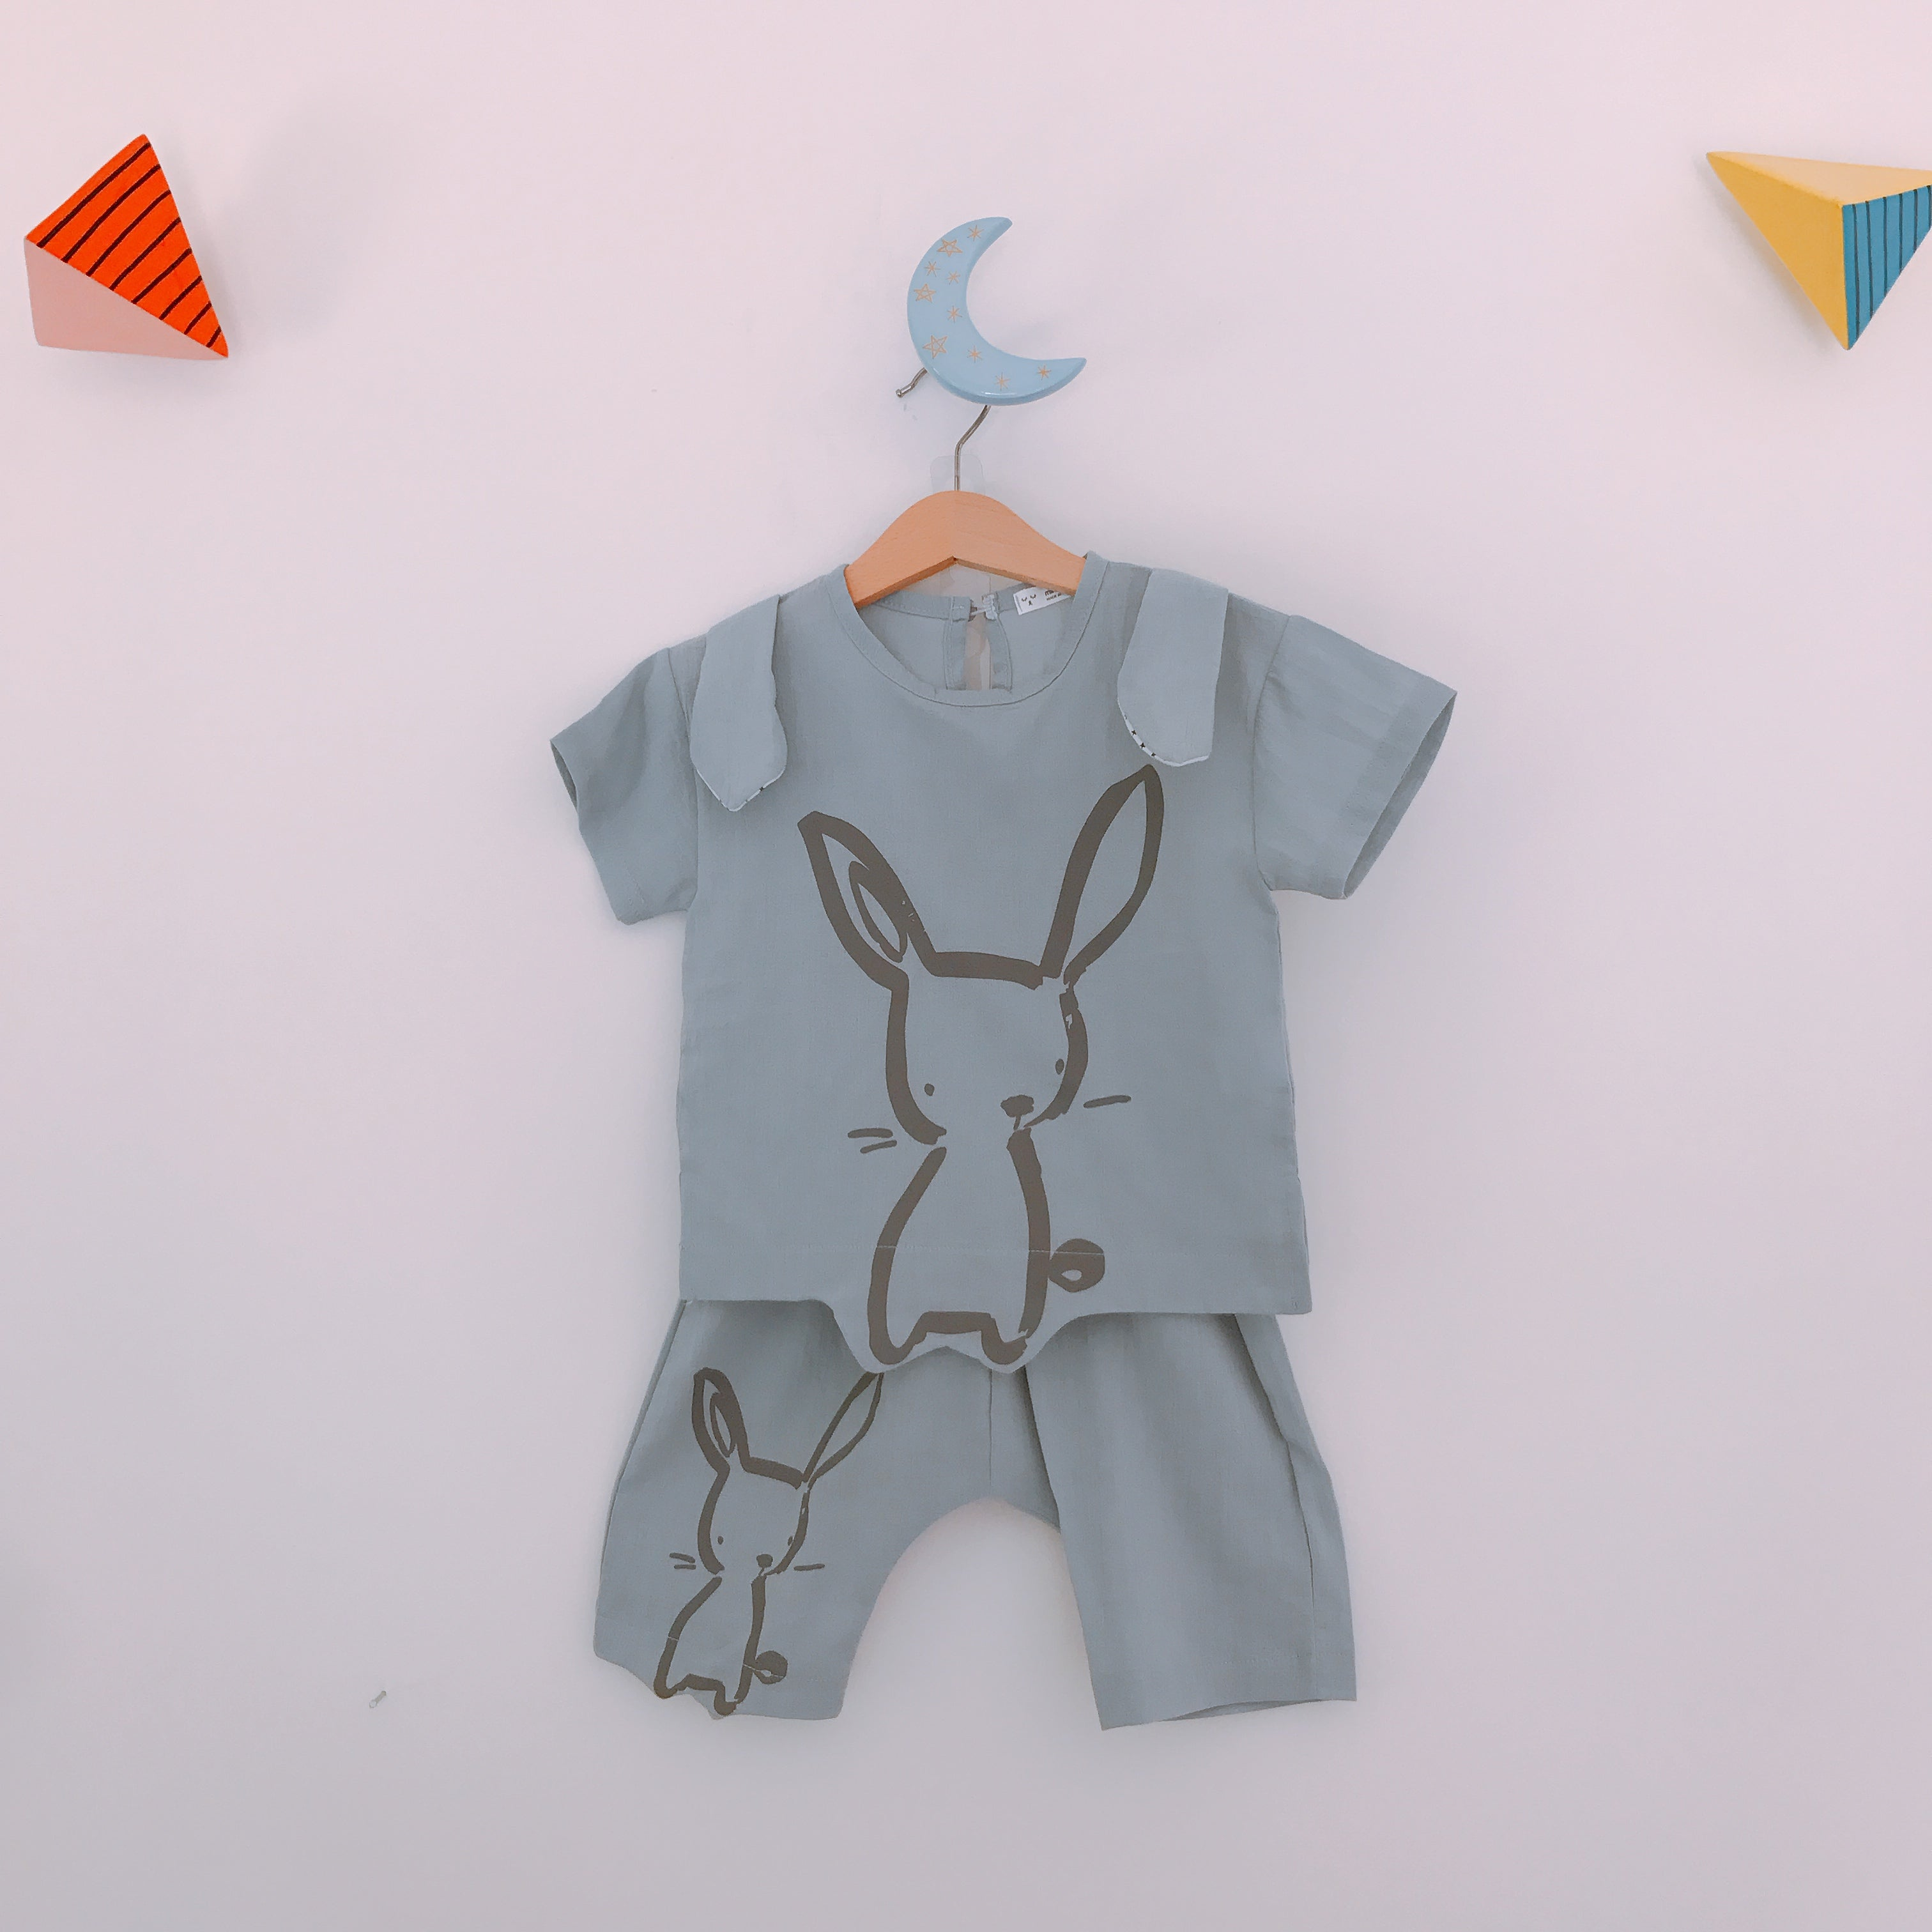 Paintbrush Rabbit Outfit - Dusty Blue